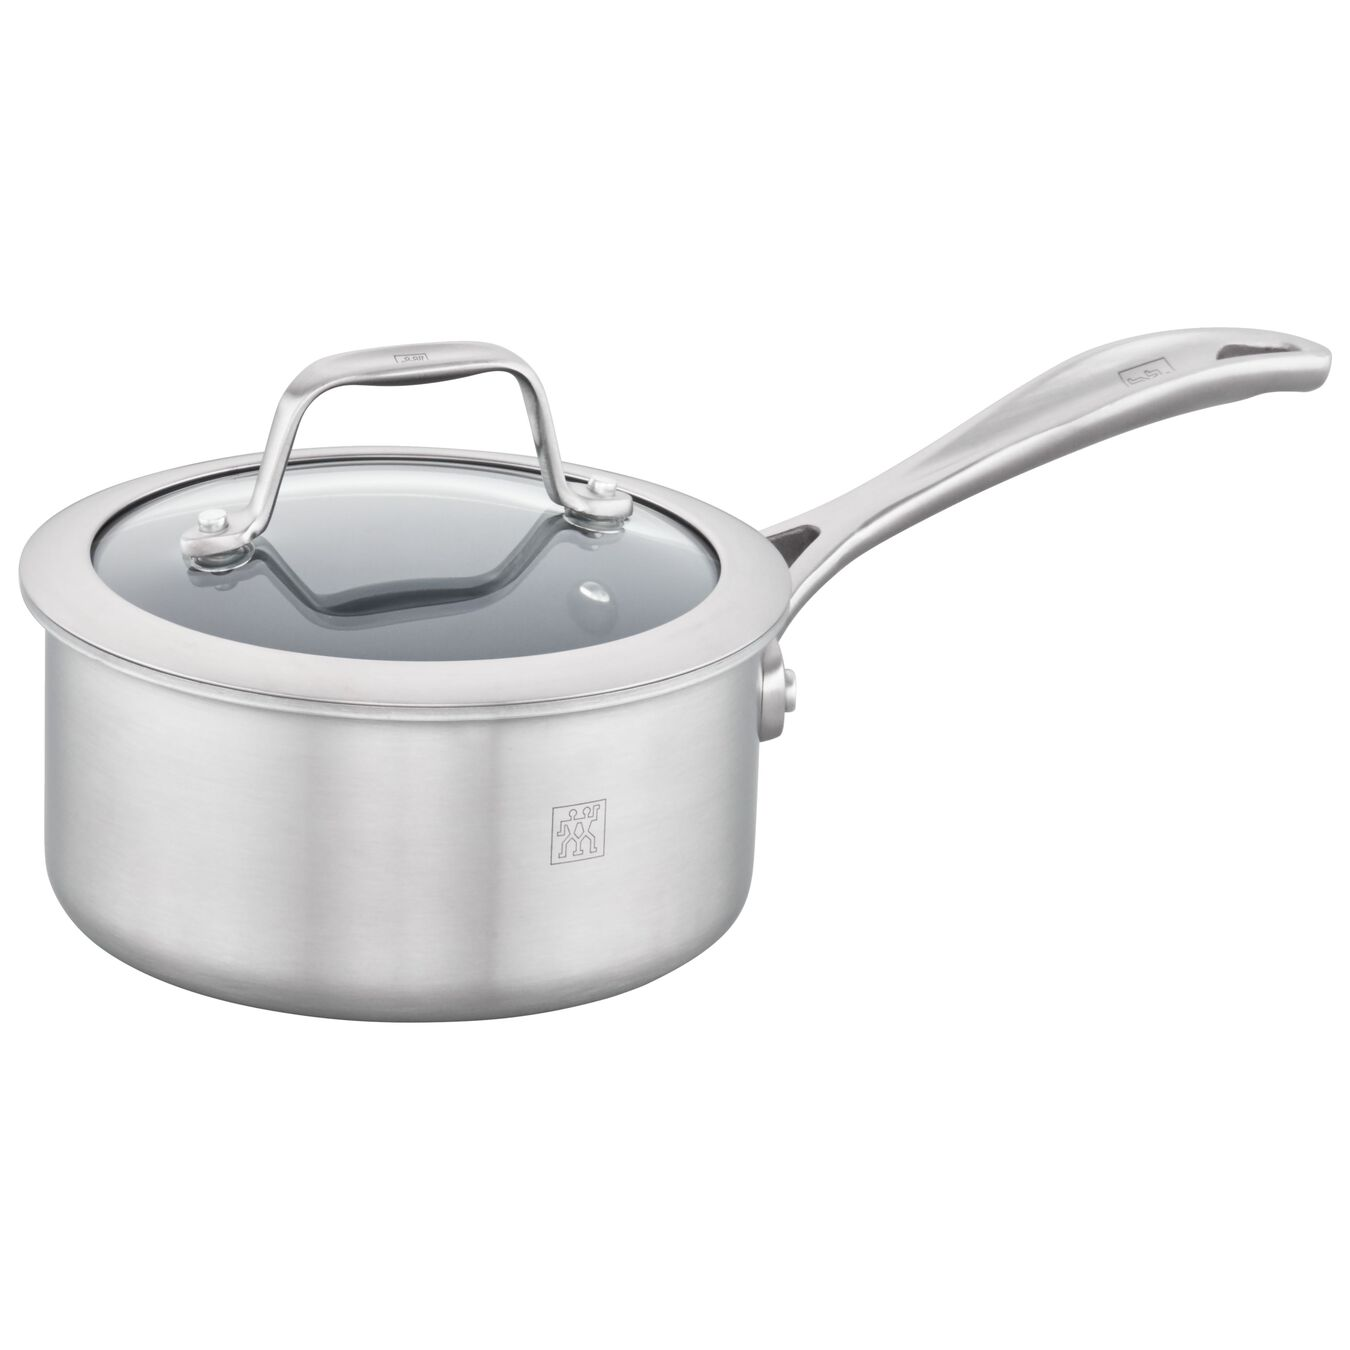 1 qt Sauce pan, 18/10 Stainless Steel ,,large 1